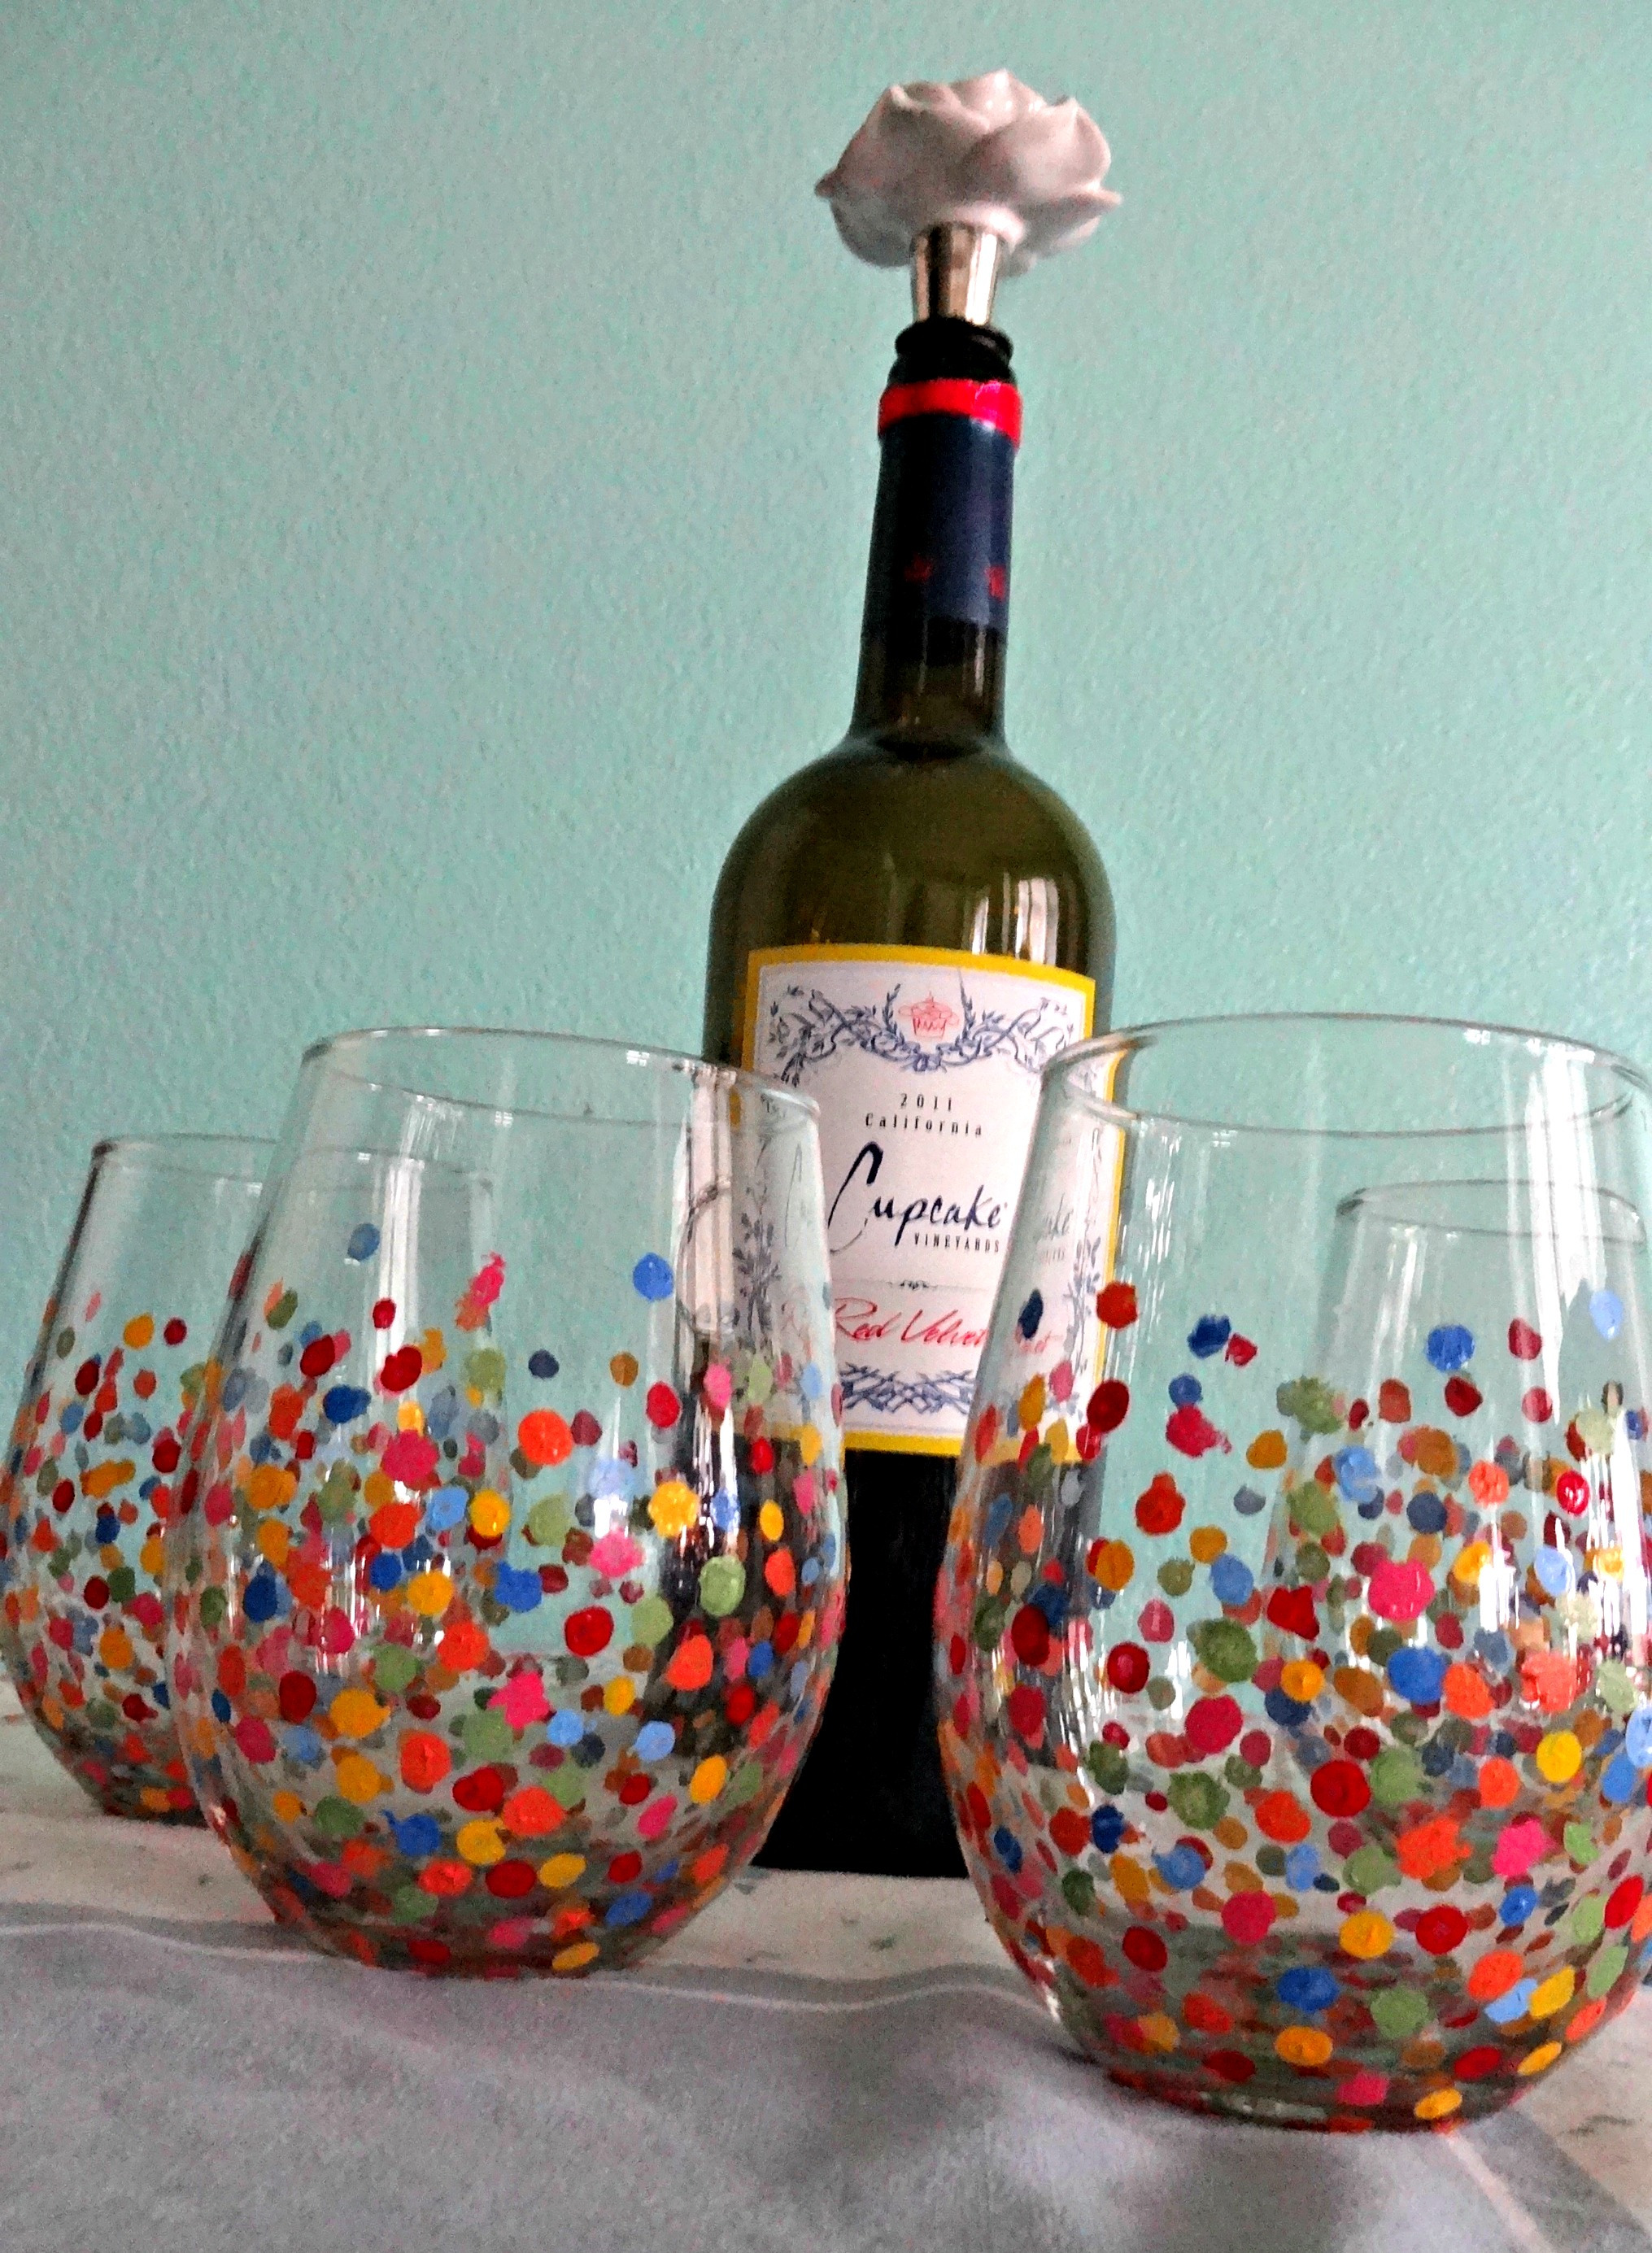 Diy painted wine glasses serendipity by sara lynn for Type of paint to use on wine glasses